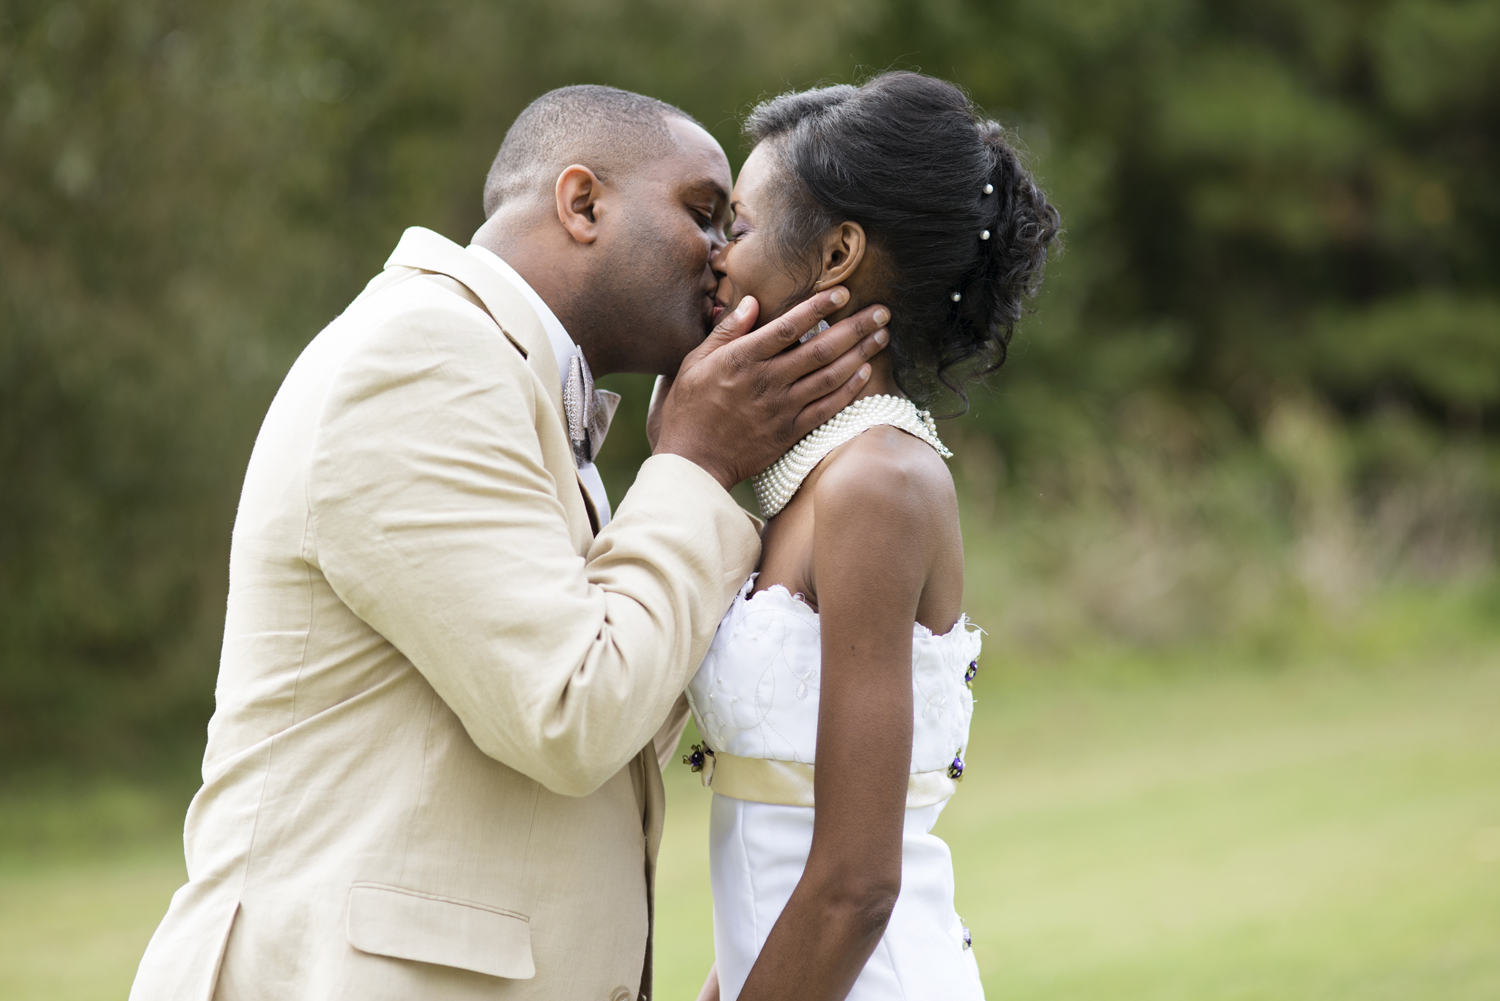 Groom pulls bride in for a kiss after their October wedding in Virginia